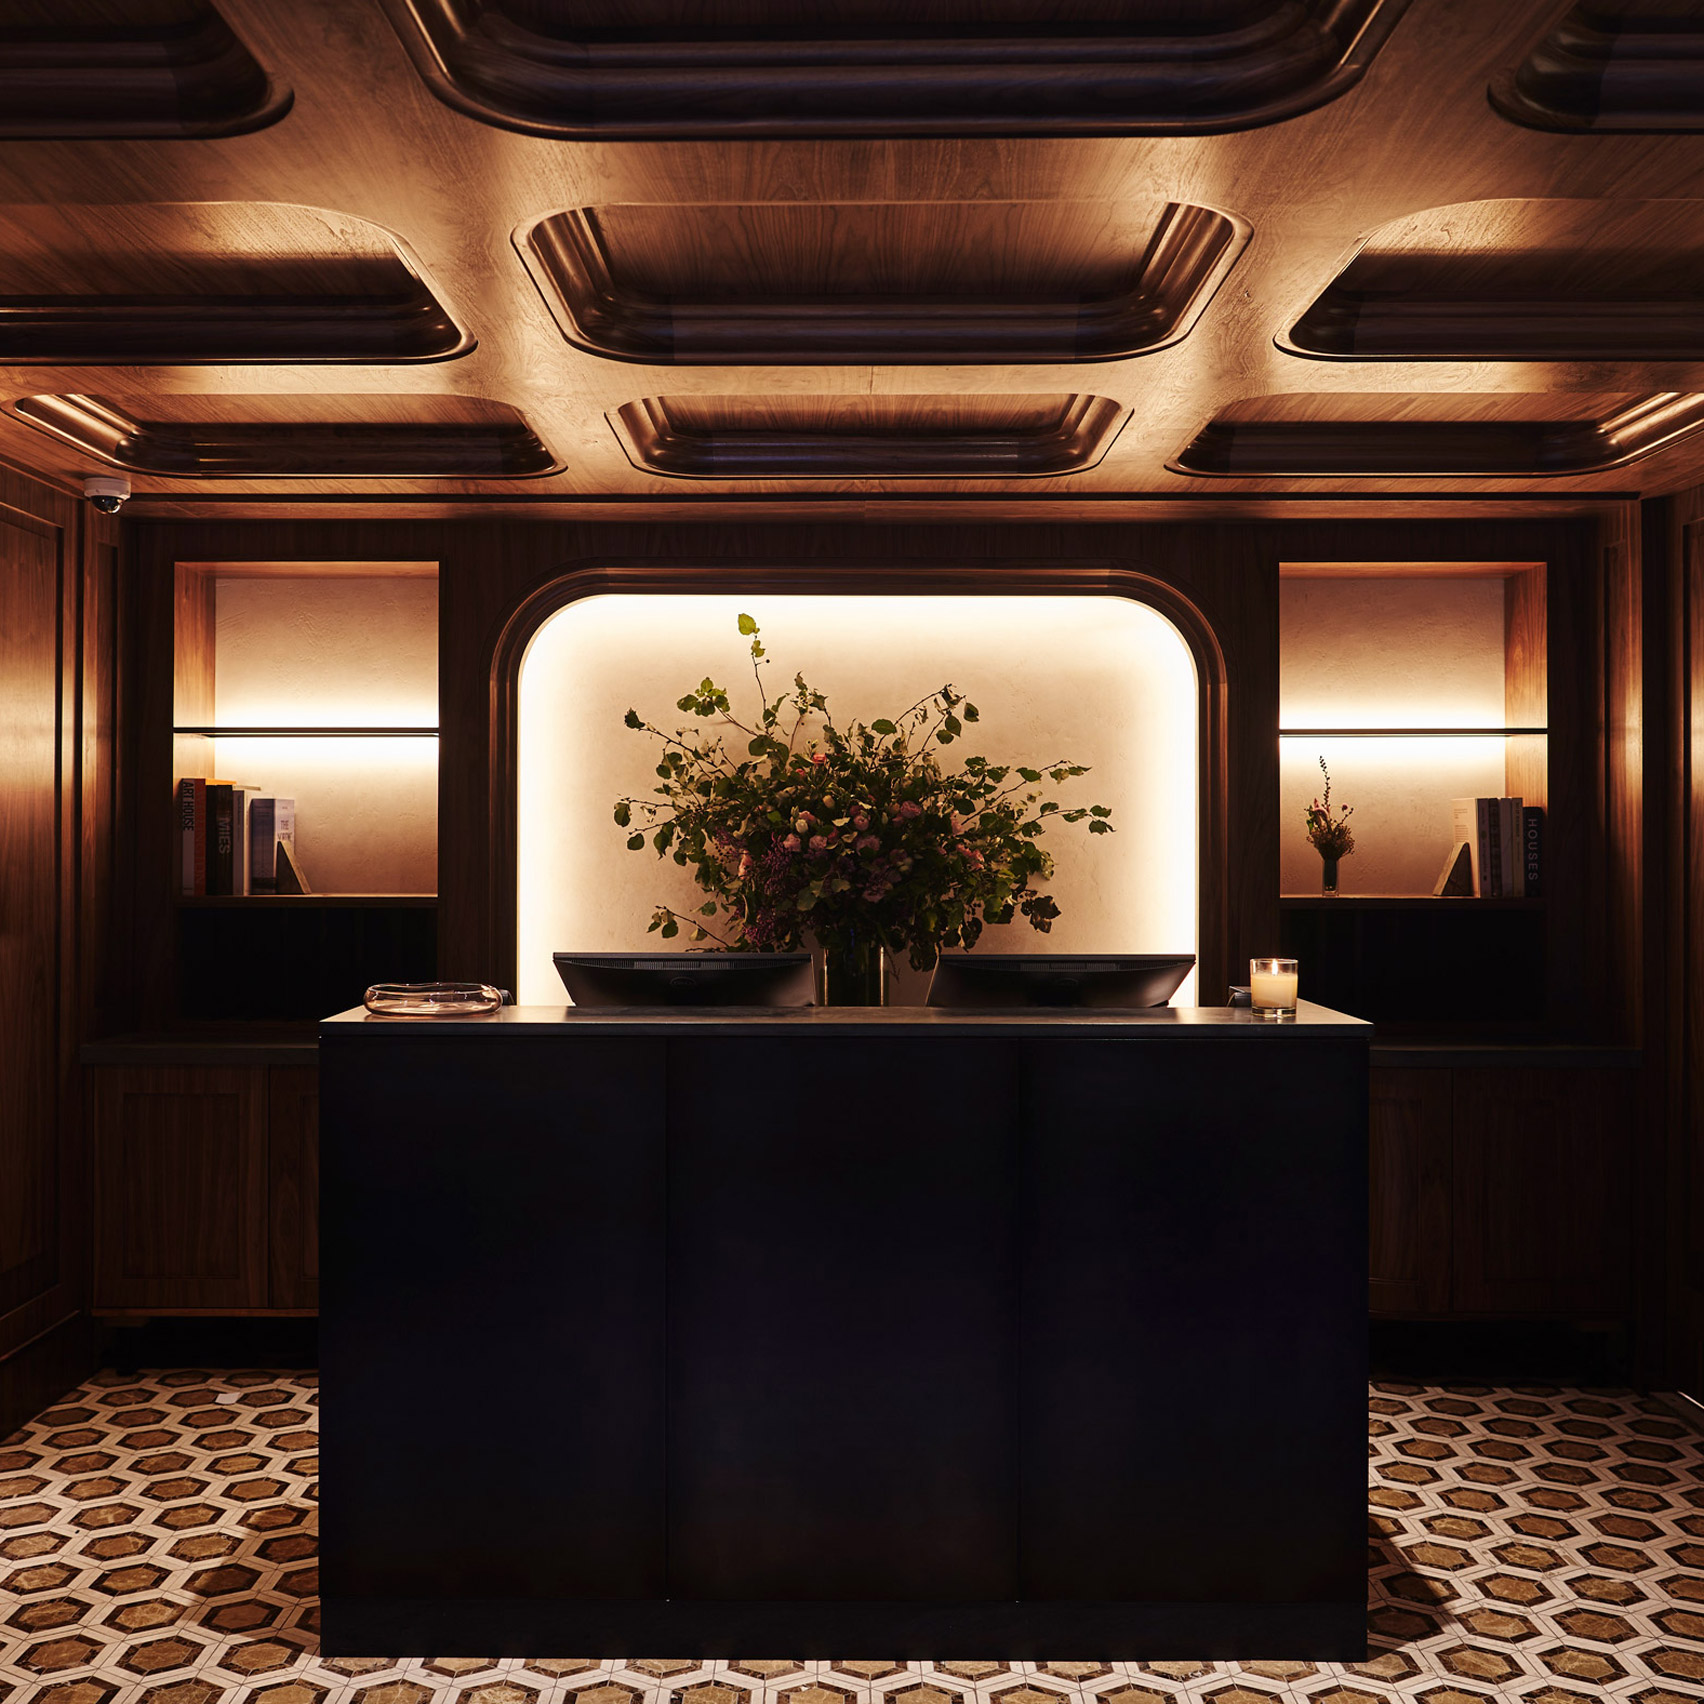 Tribeca button factory becomes Walker Hotel with